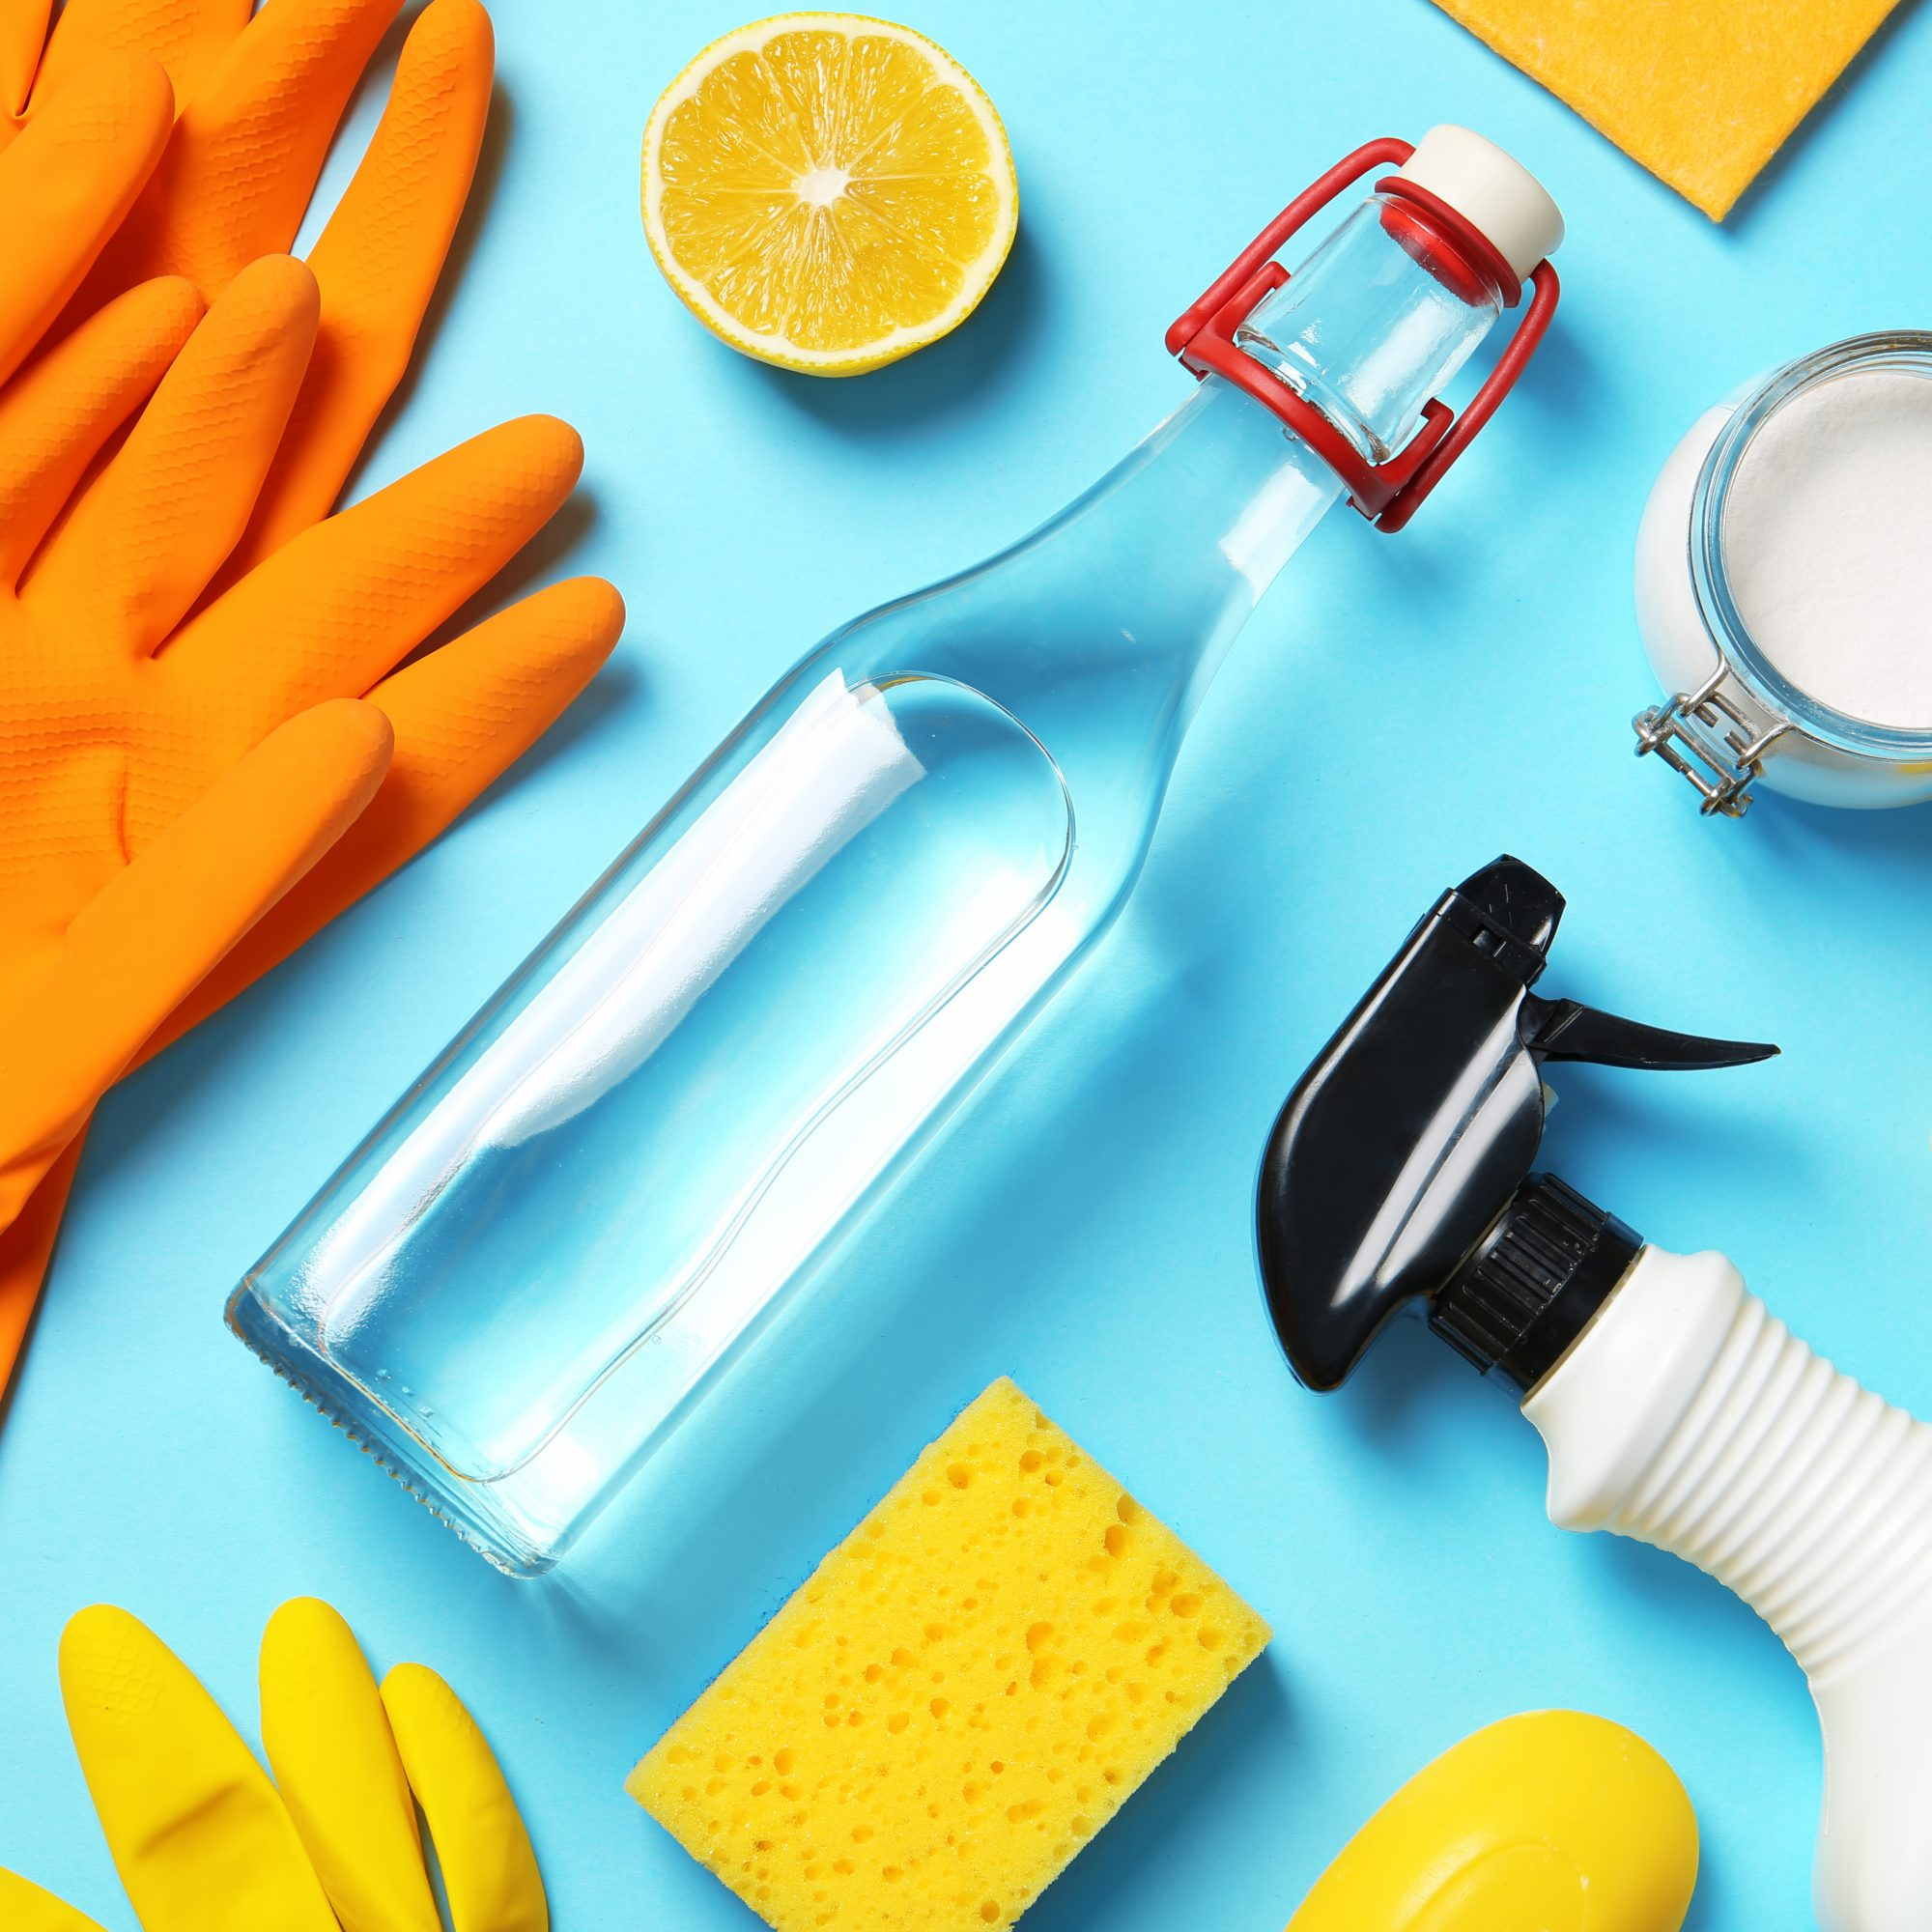 Flat_Lay_of_Natural_Cleaning_Products_and_Supplies